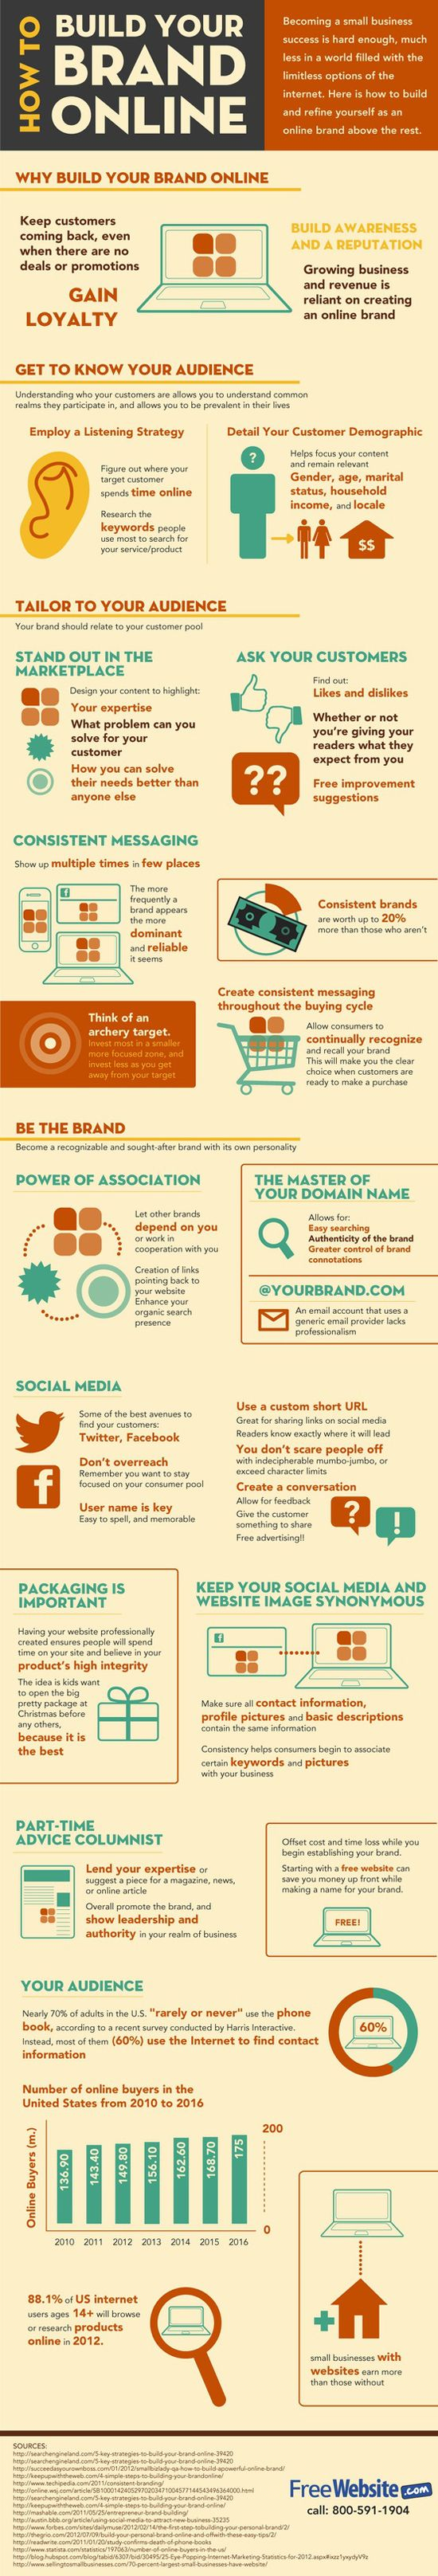 How to Build Your Brand Online Infographic by So! What? Social. #infographic #branding